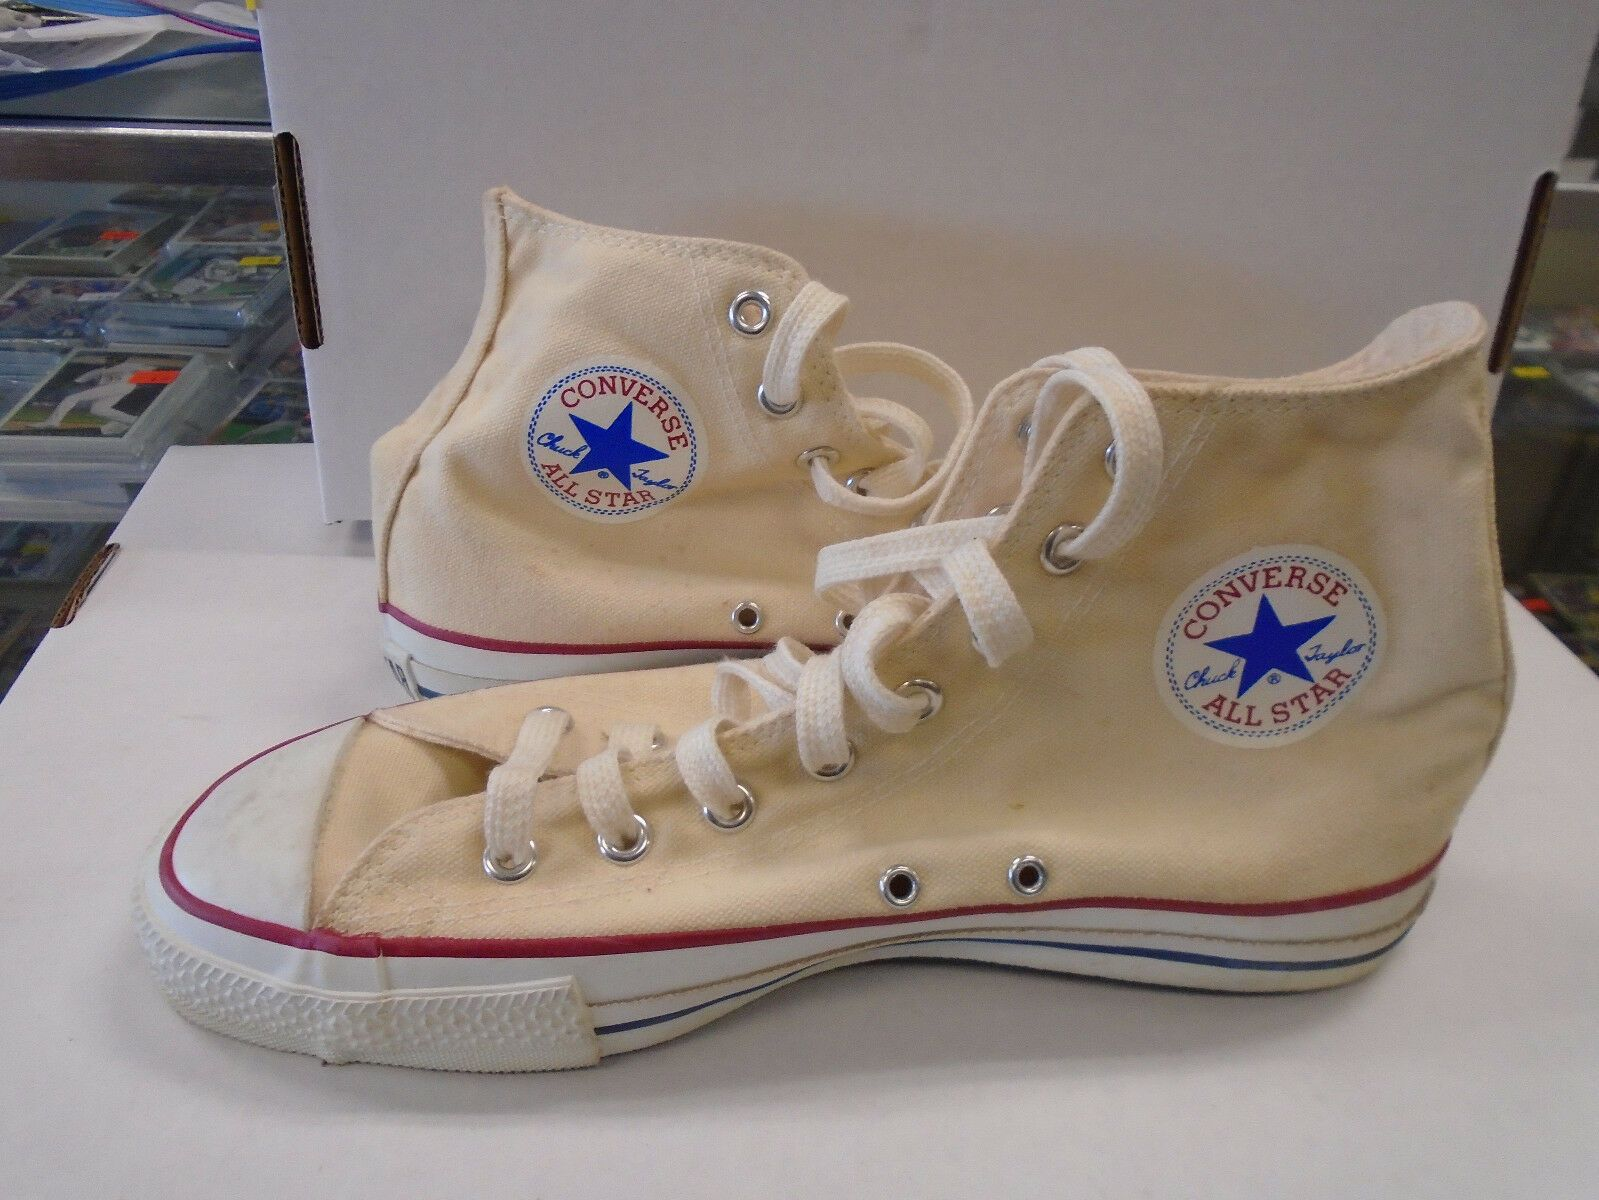 Vintage Converse Chuck Taylor All Star Shoes Made in USA